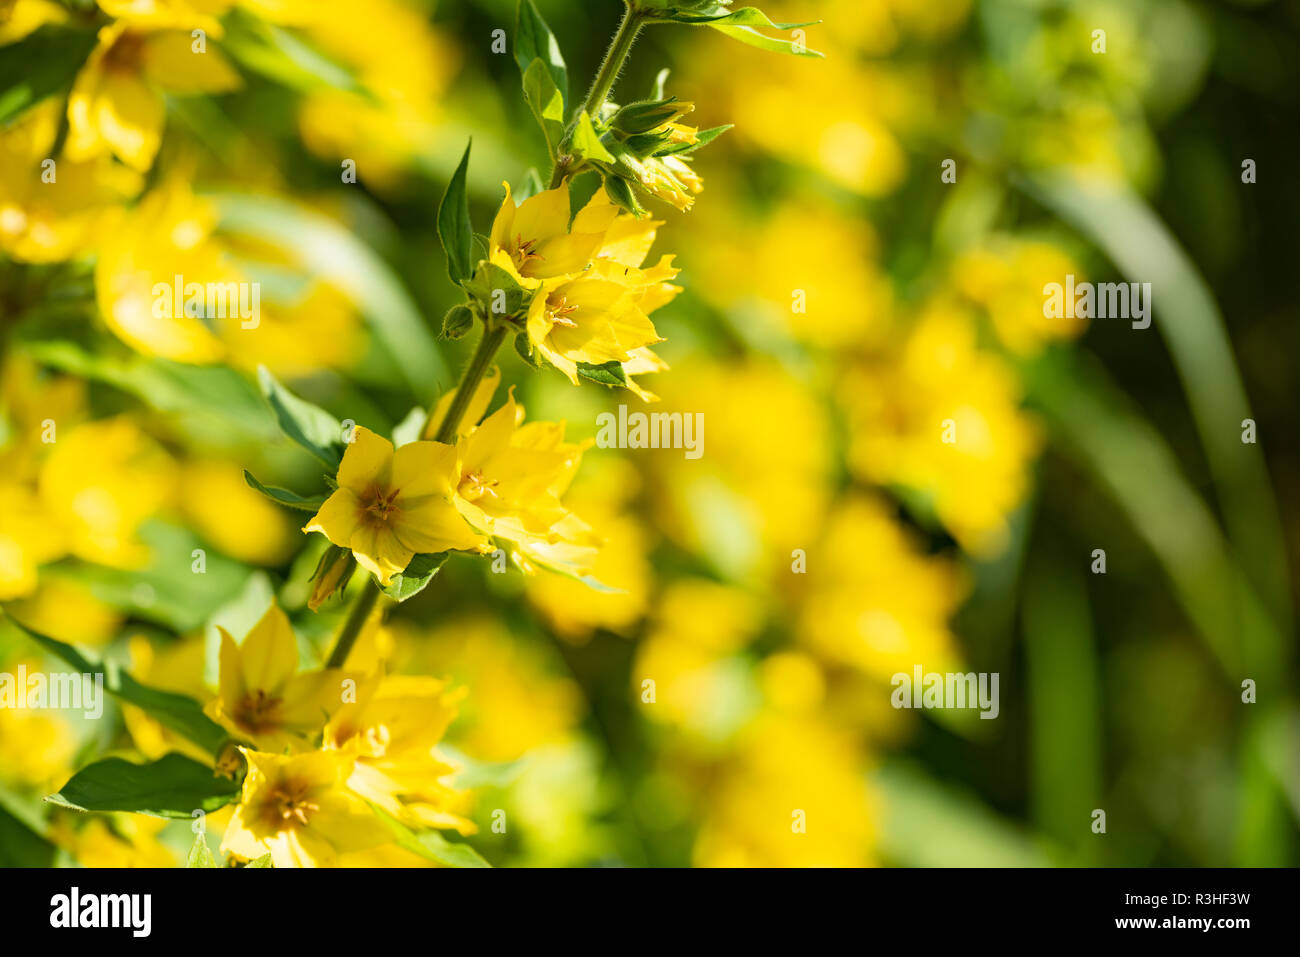 Yellow flowers of a perennial plant - Lysimachia vulgaris, close up. Stock Photo